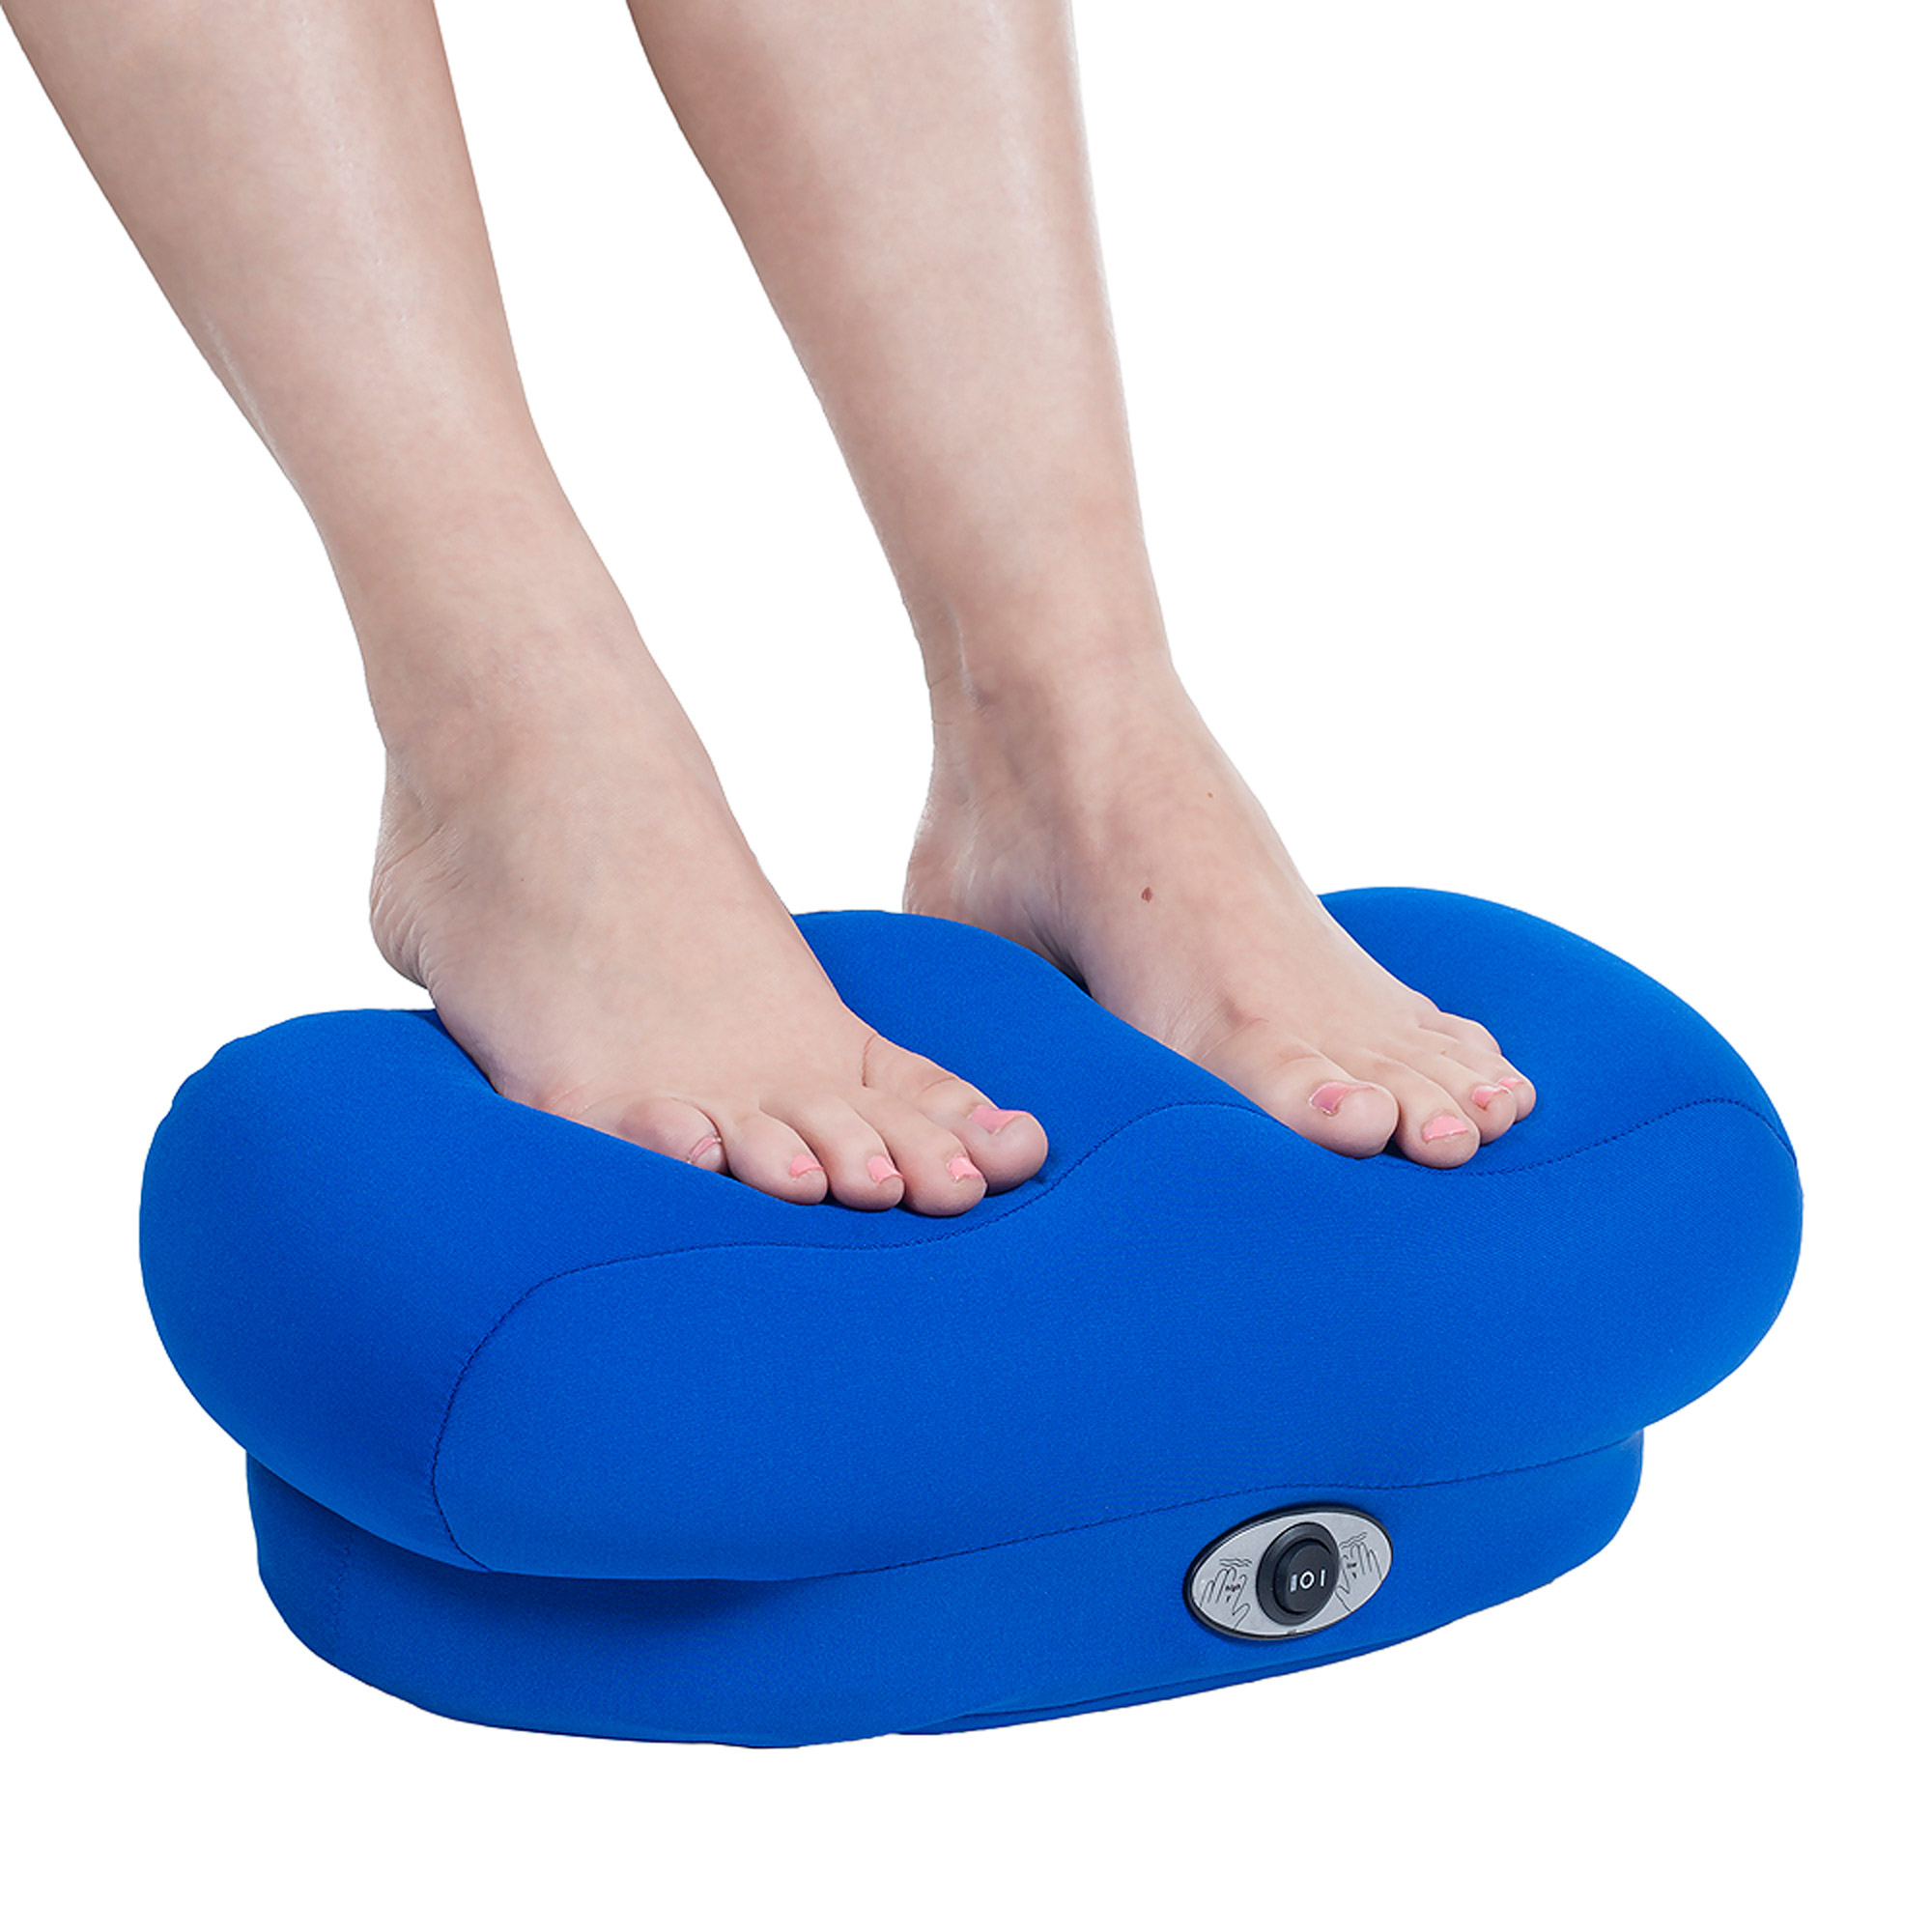 Remedy Vibrating Foot Massager - Micro Bead Soft